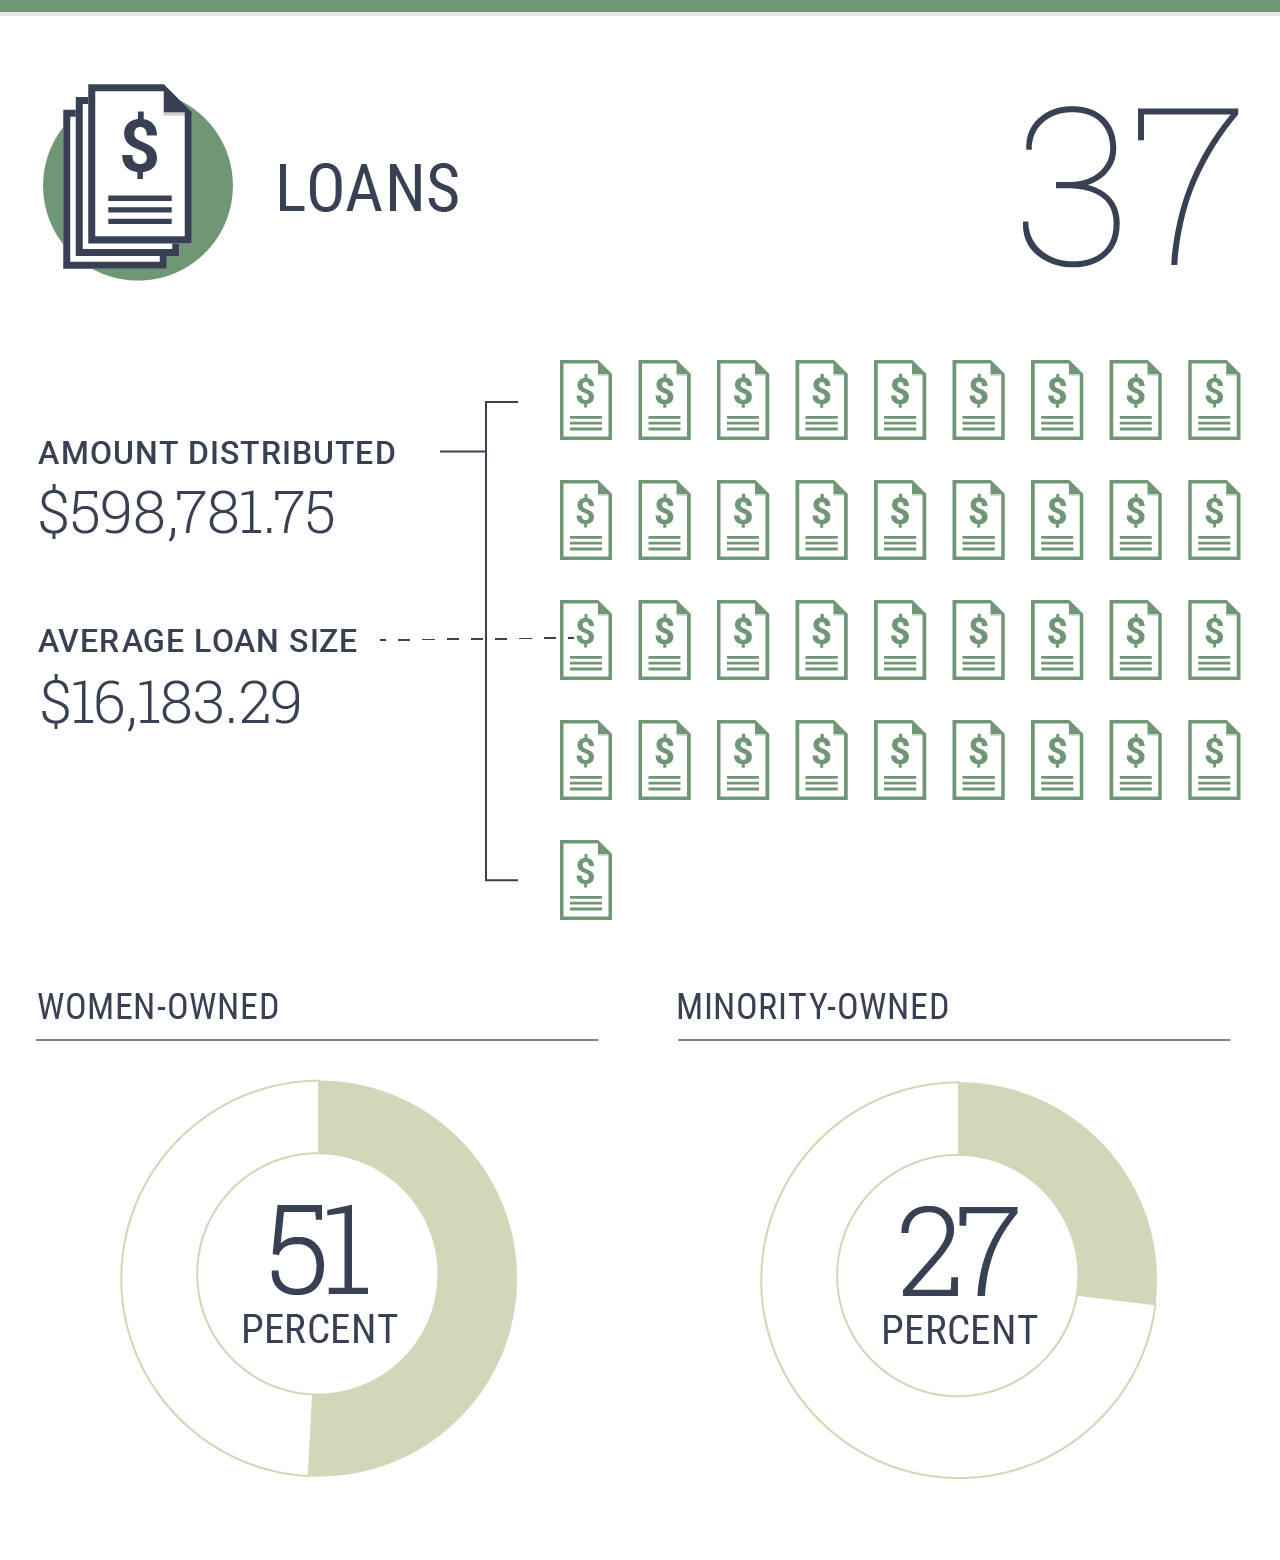 37 loans totaling $598,781.75 with the average loan size of $16,183.29. 51% of loans distributed to women-owned businesses. 27% of loans distributed to minority-owned businesses.